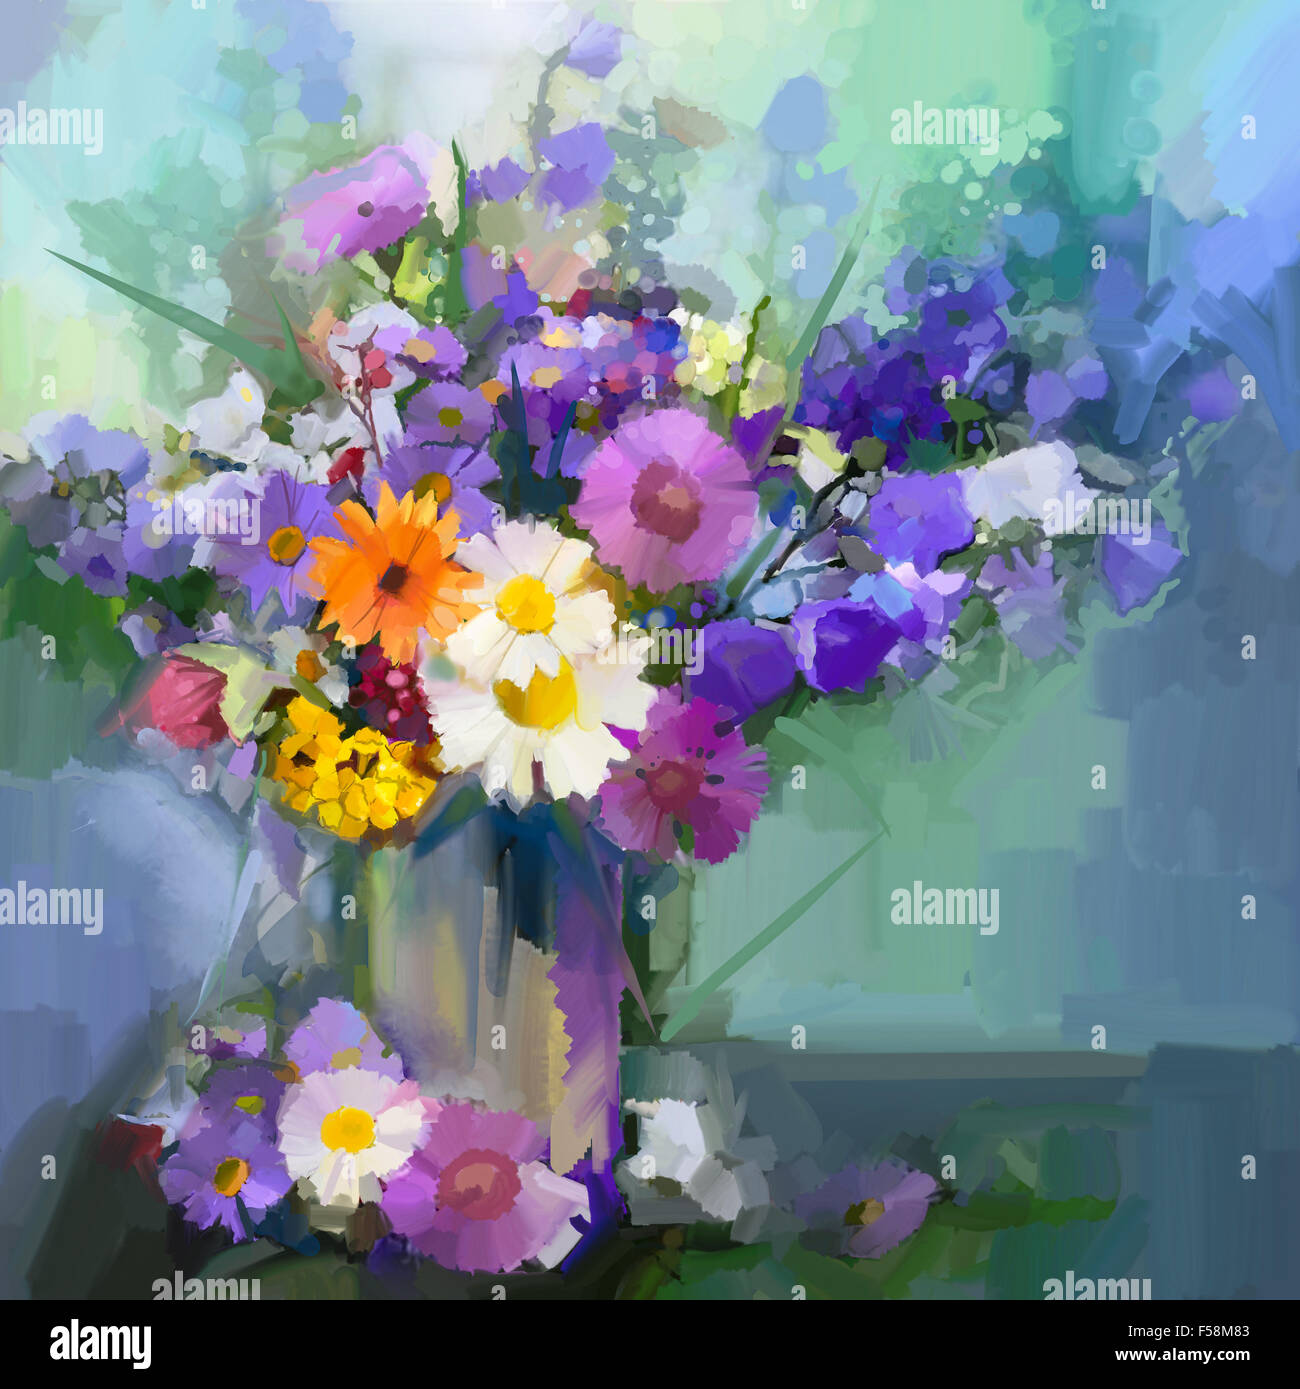 Still life a bouquet of flowers oil painting daisy flowers in still life a bouquet of flowers oil painting daisy flowers in vase hand painted floral in soft color and blurred style green c floridaeventfo Images